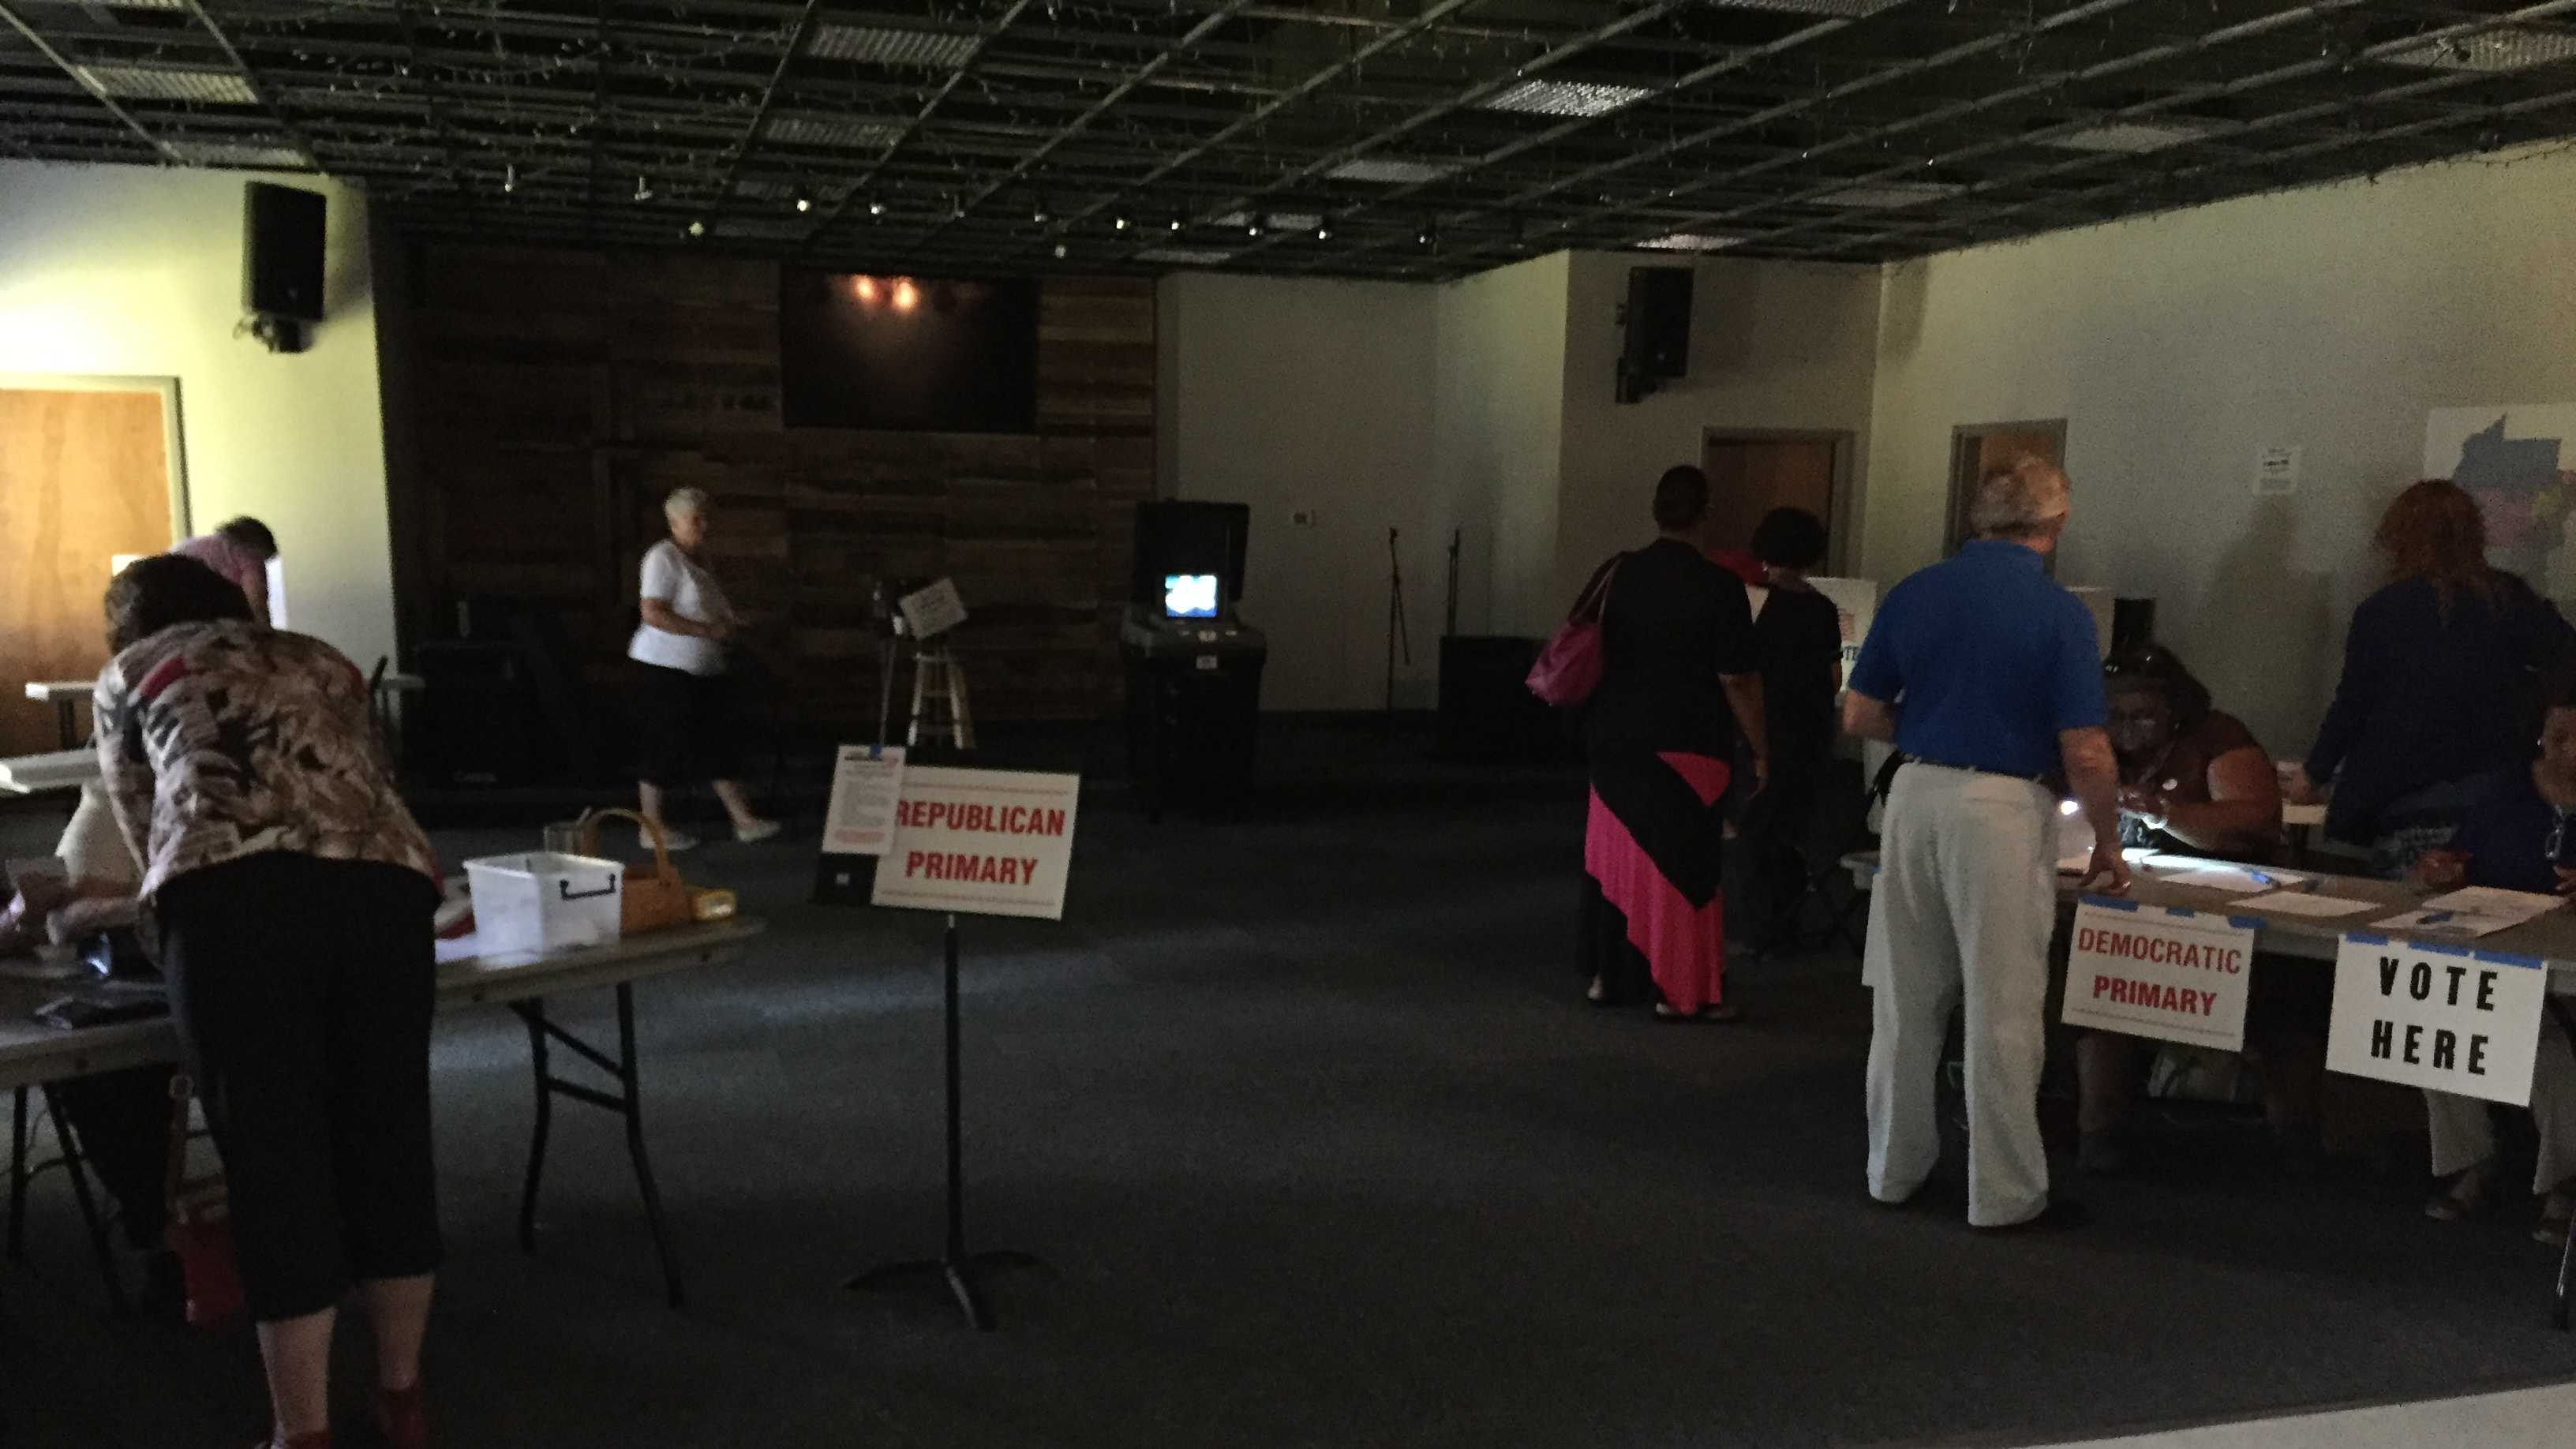 Voters at the First Baptist Church in Clinton had to cast their ballots in the dark.